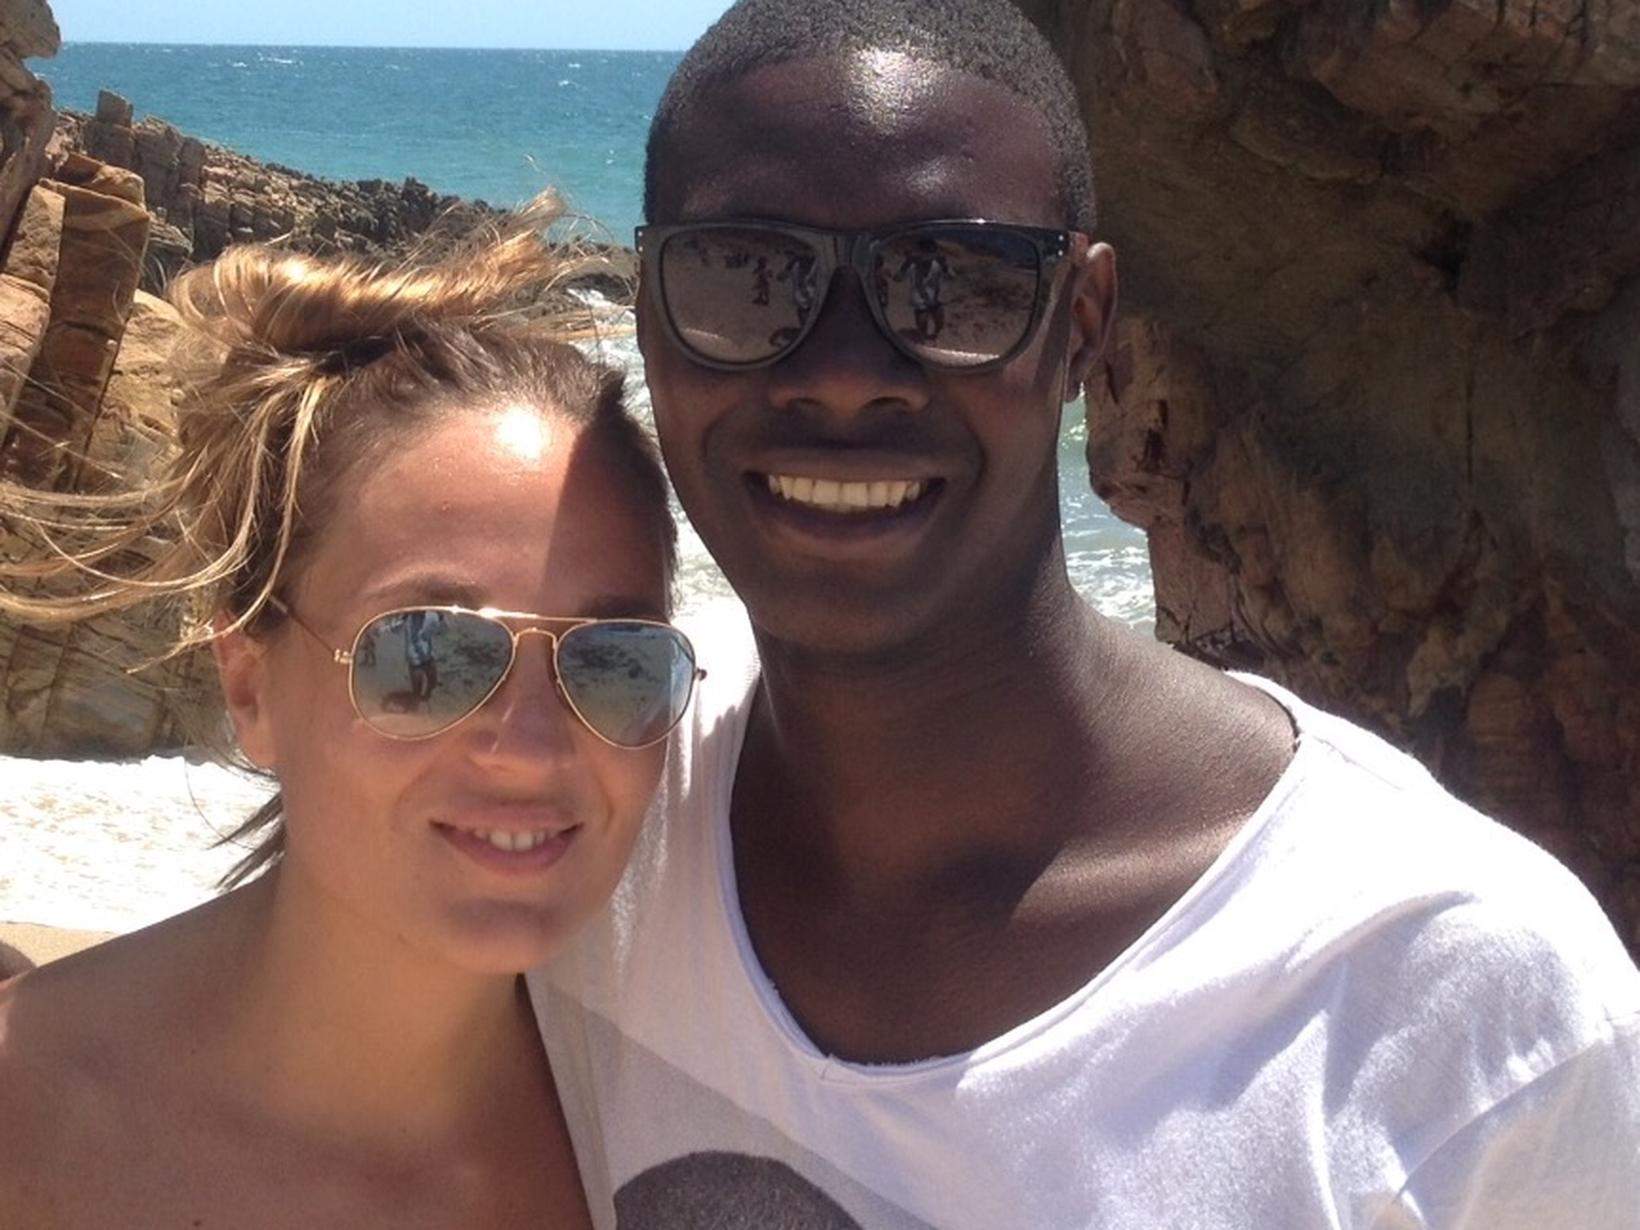 Marie & Ibrahima from Montpellier, France